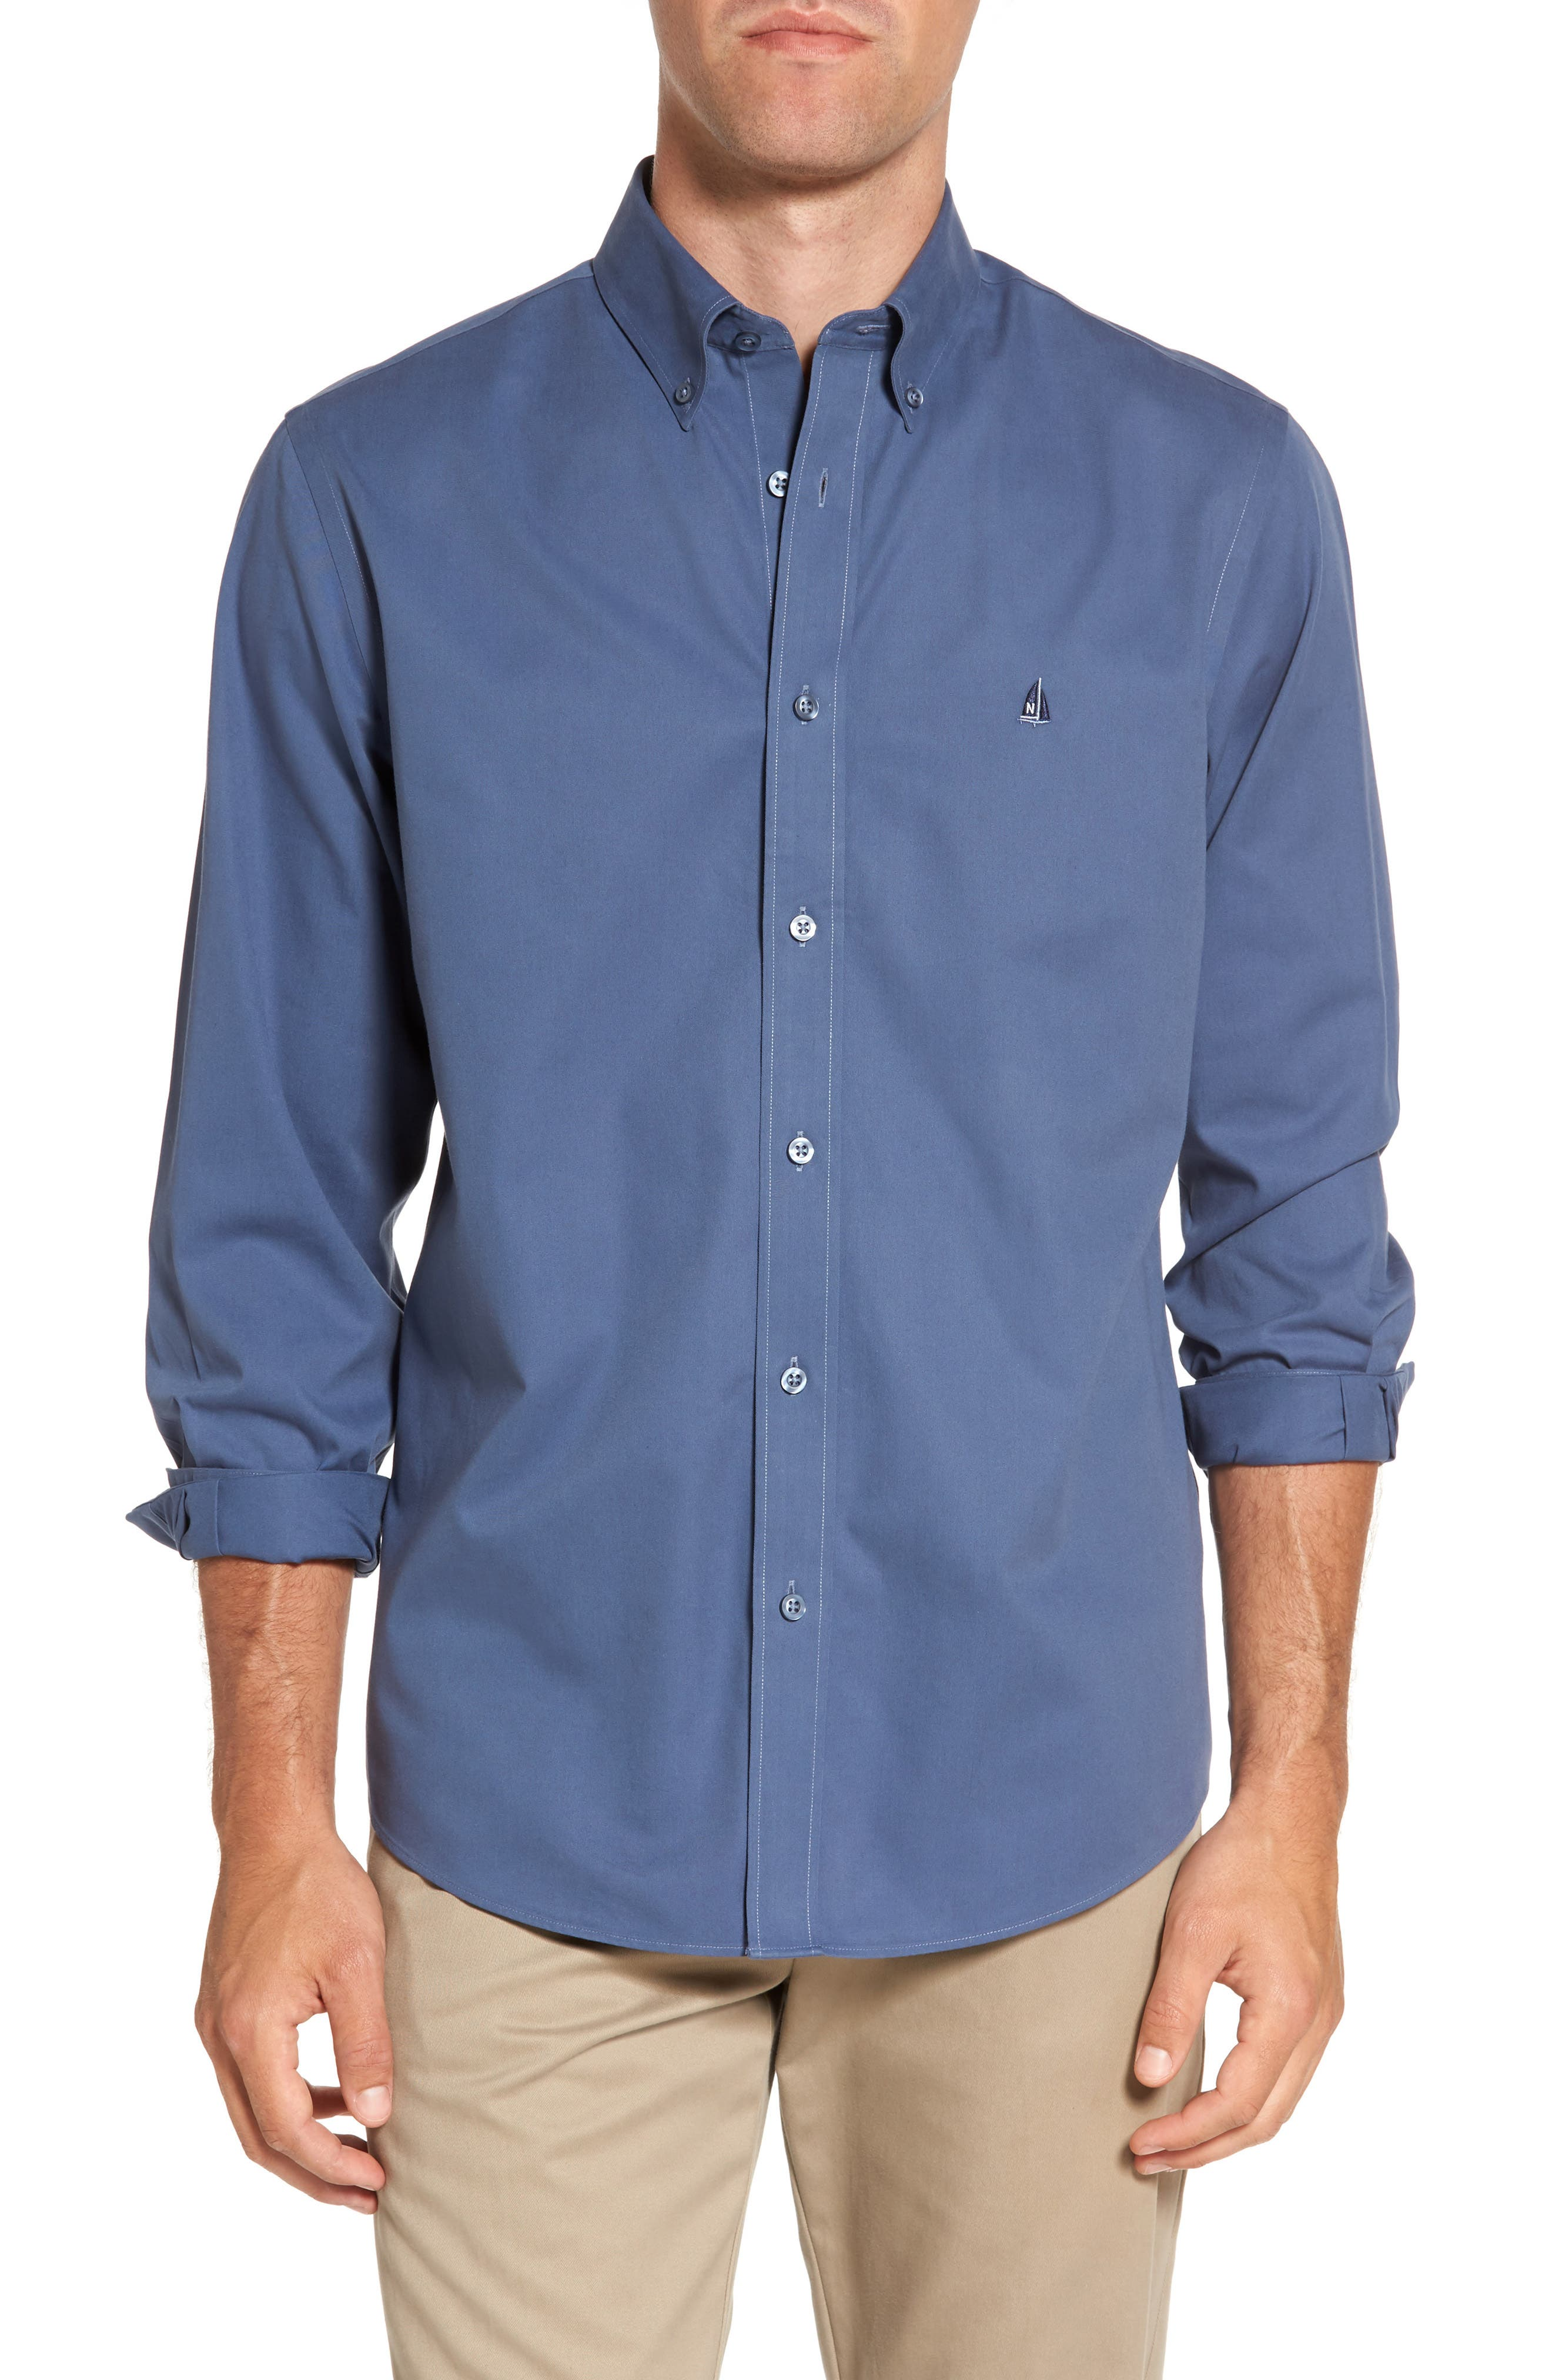 Main Image - Nordstrom Men's Shop Smartcare™ Traditional Fit Twill Boat Shirt (Regular & Tall)